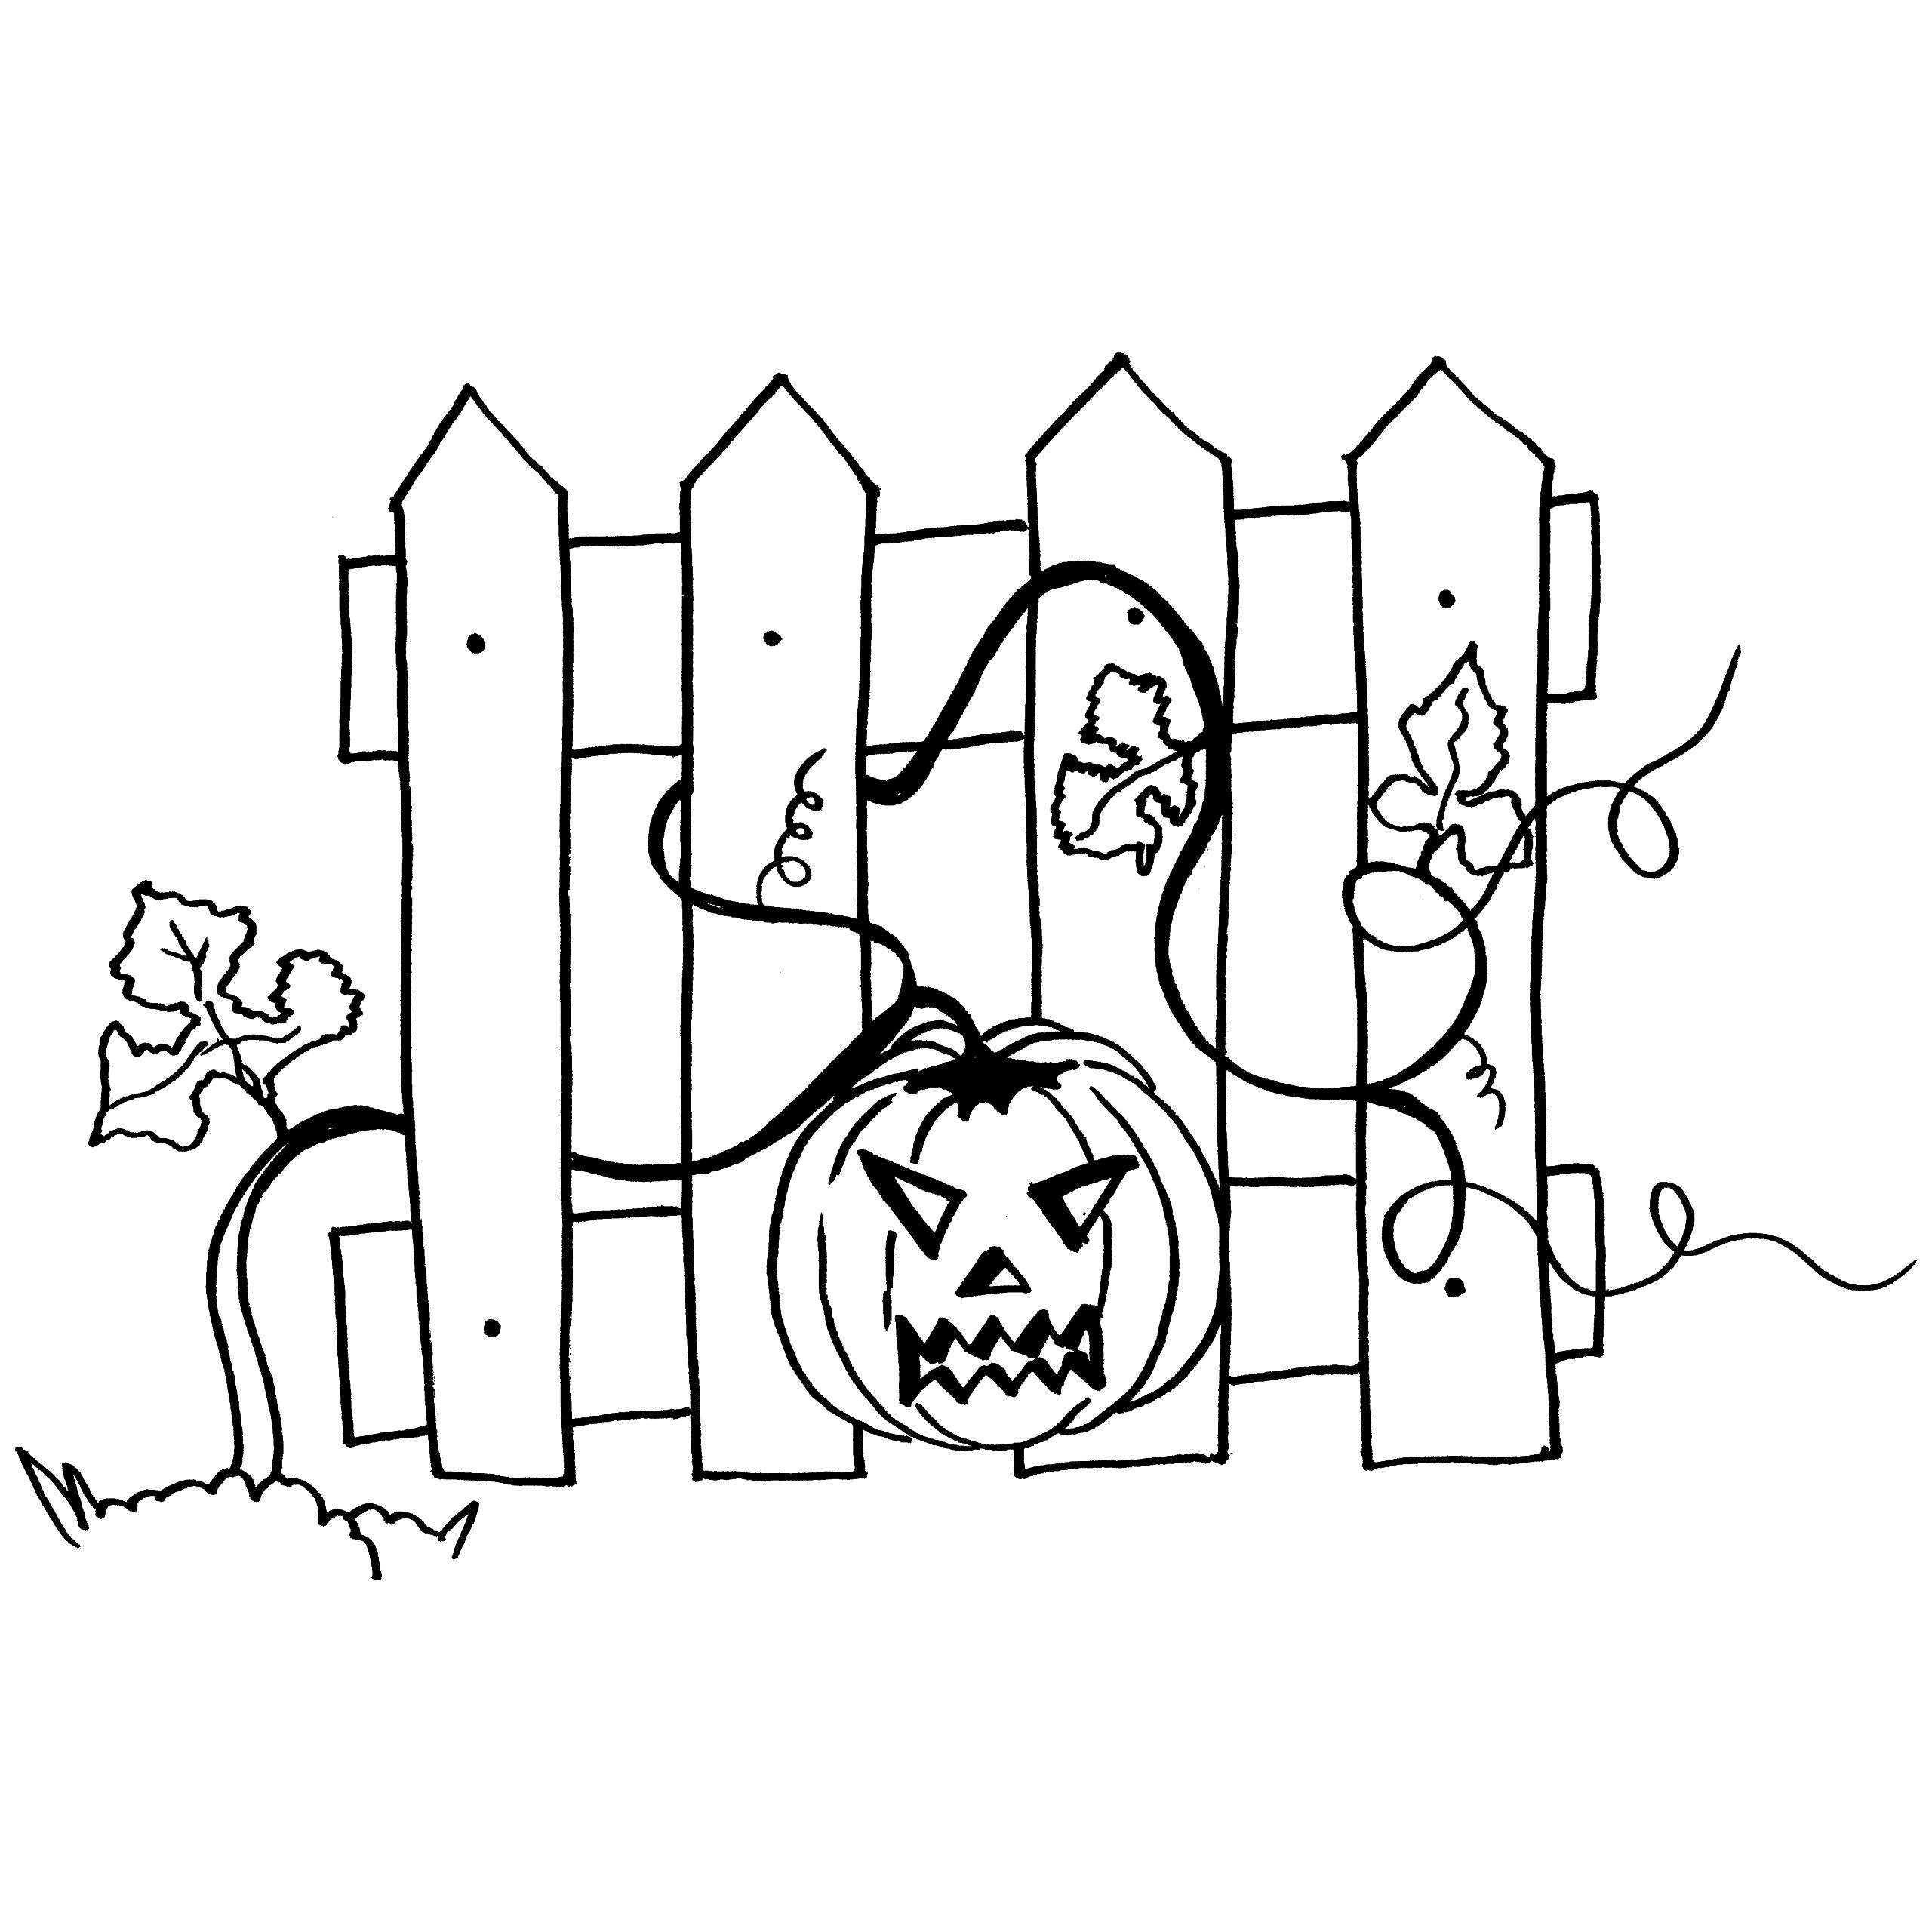 2560x2560 Pumpkin Vines Coloring Page For Kid To Print